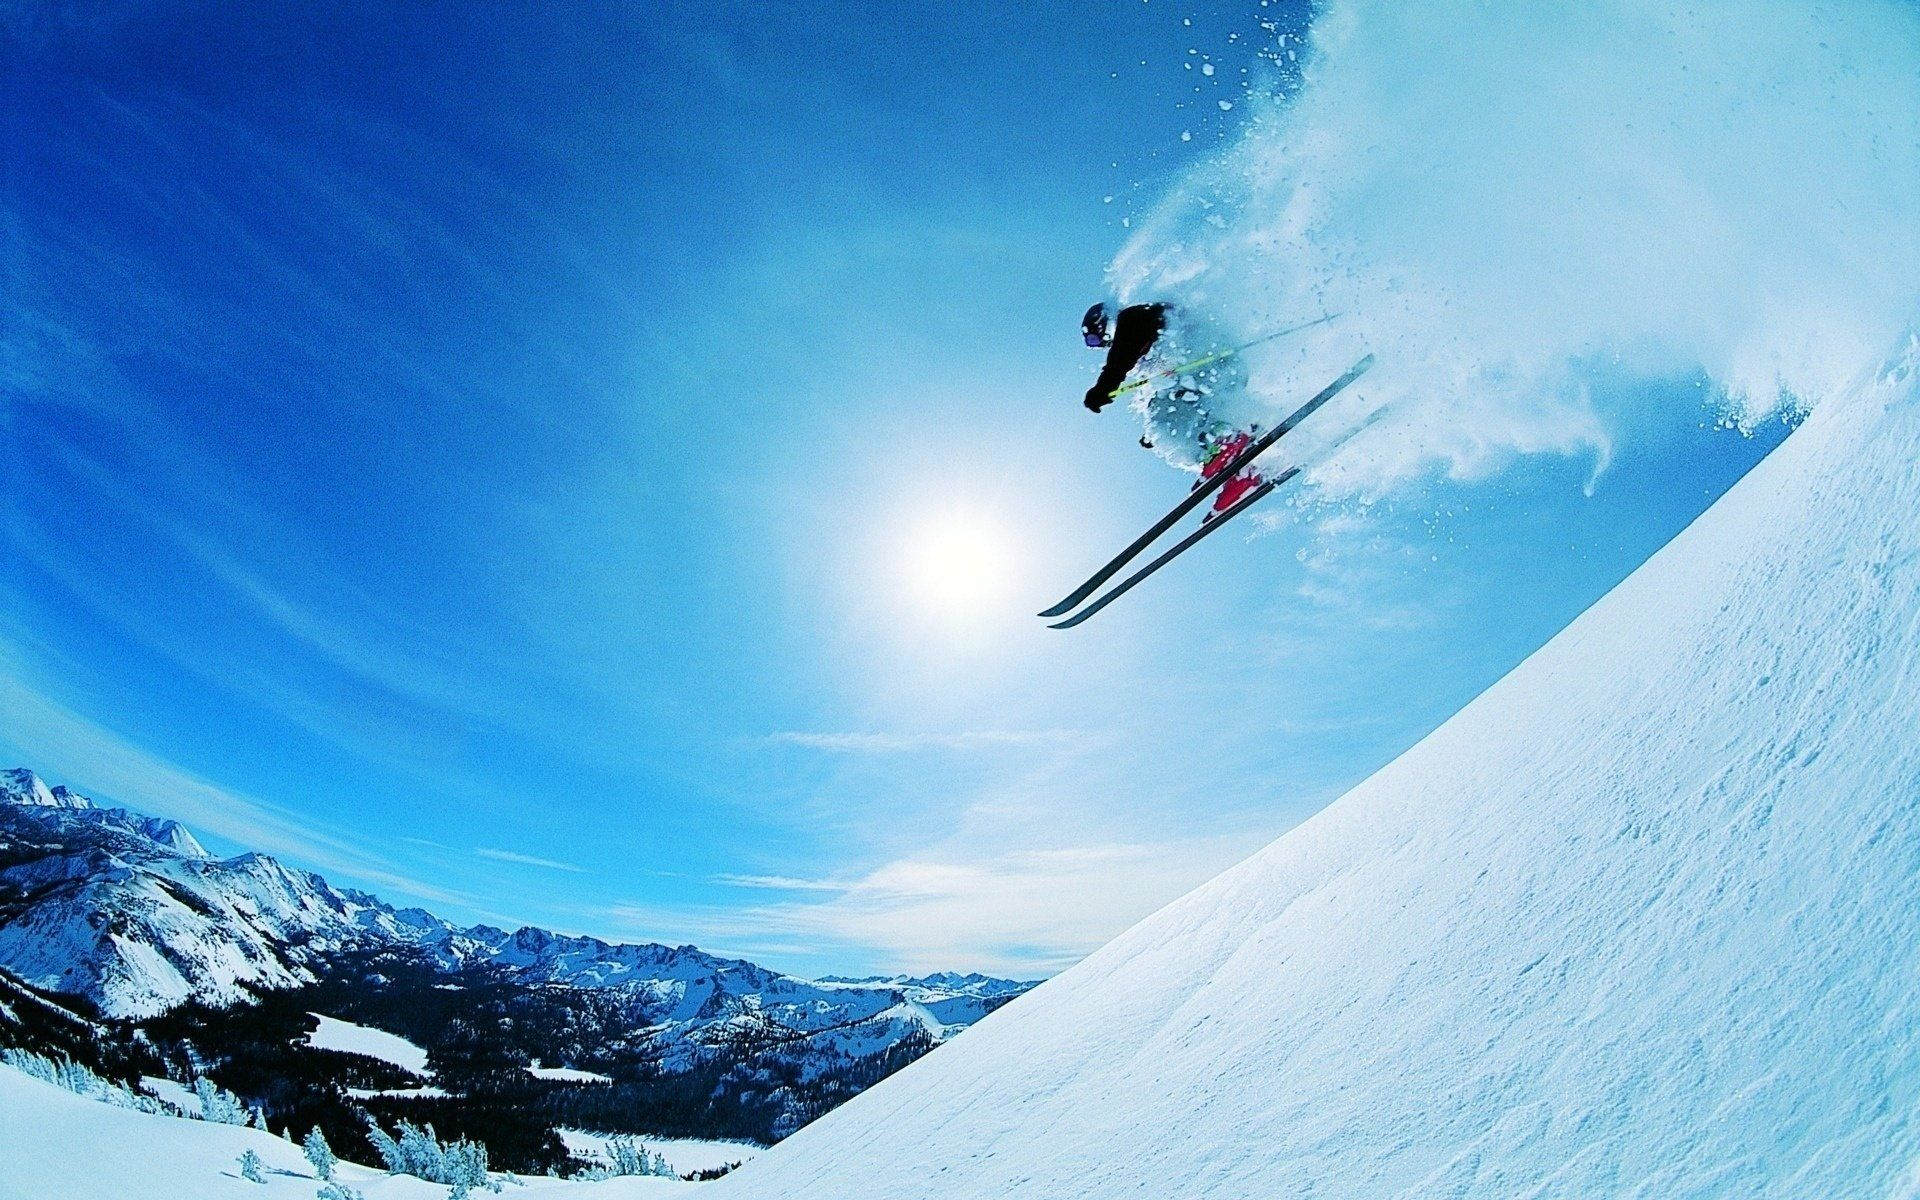 Skiing Wallpapers   Top Skiing Backgrounds   WallpaperAccess 1920x1200